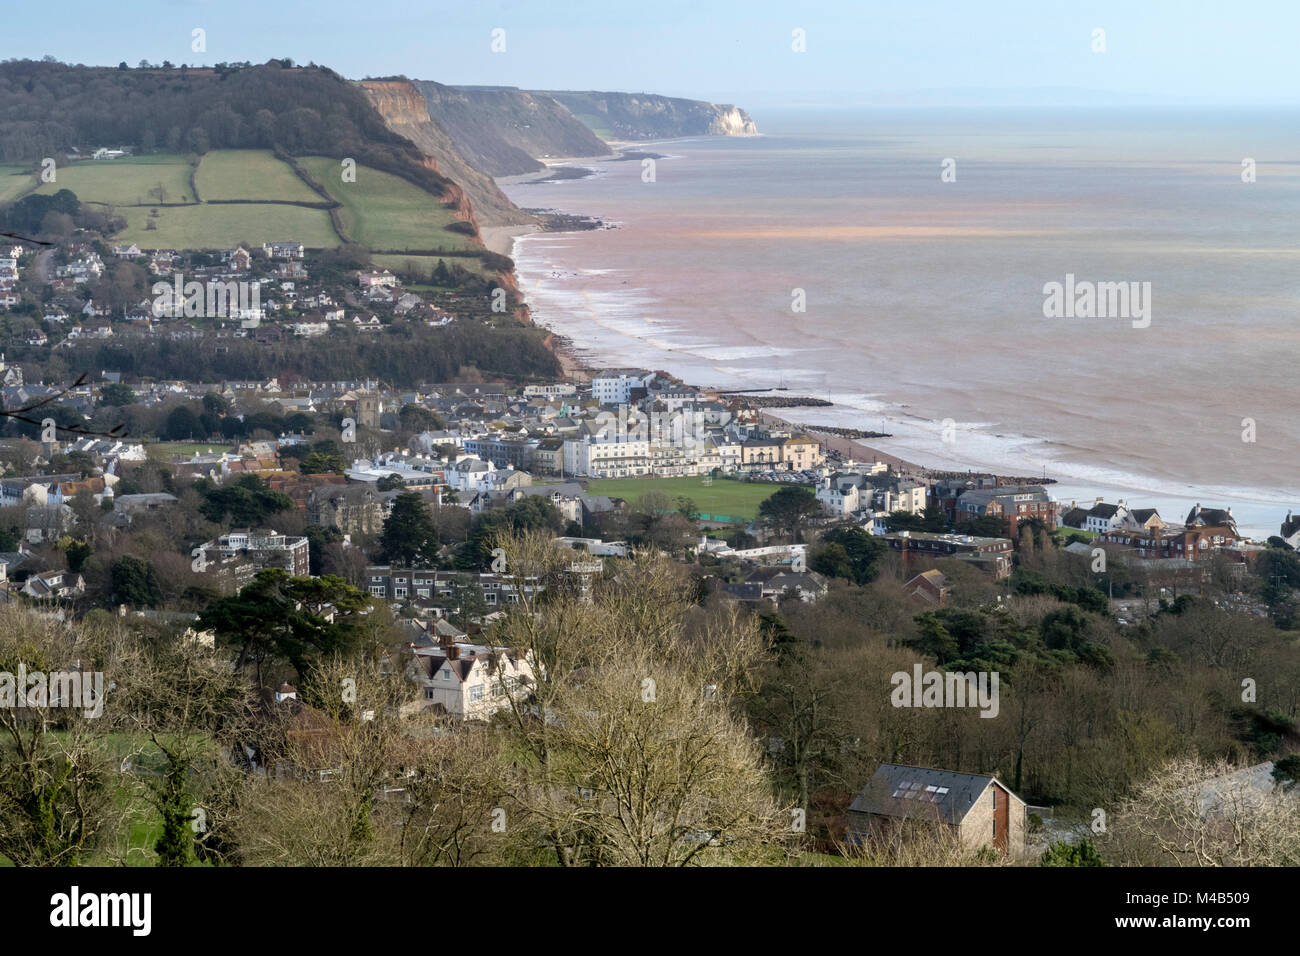 Walkers view down onto Sidmouth from the footpaths in Mutters Moor, alongside Peak Hill, Sidmouth, Devon, UK - Stock Image